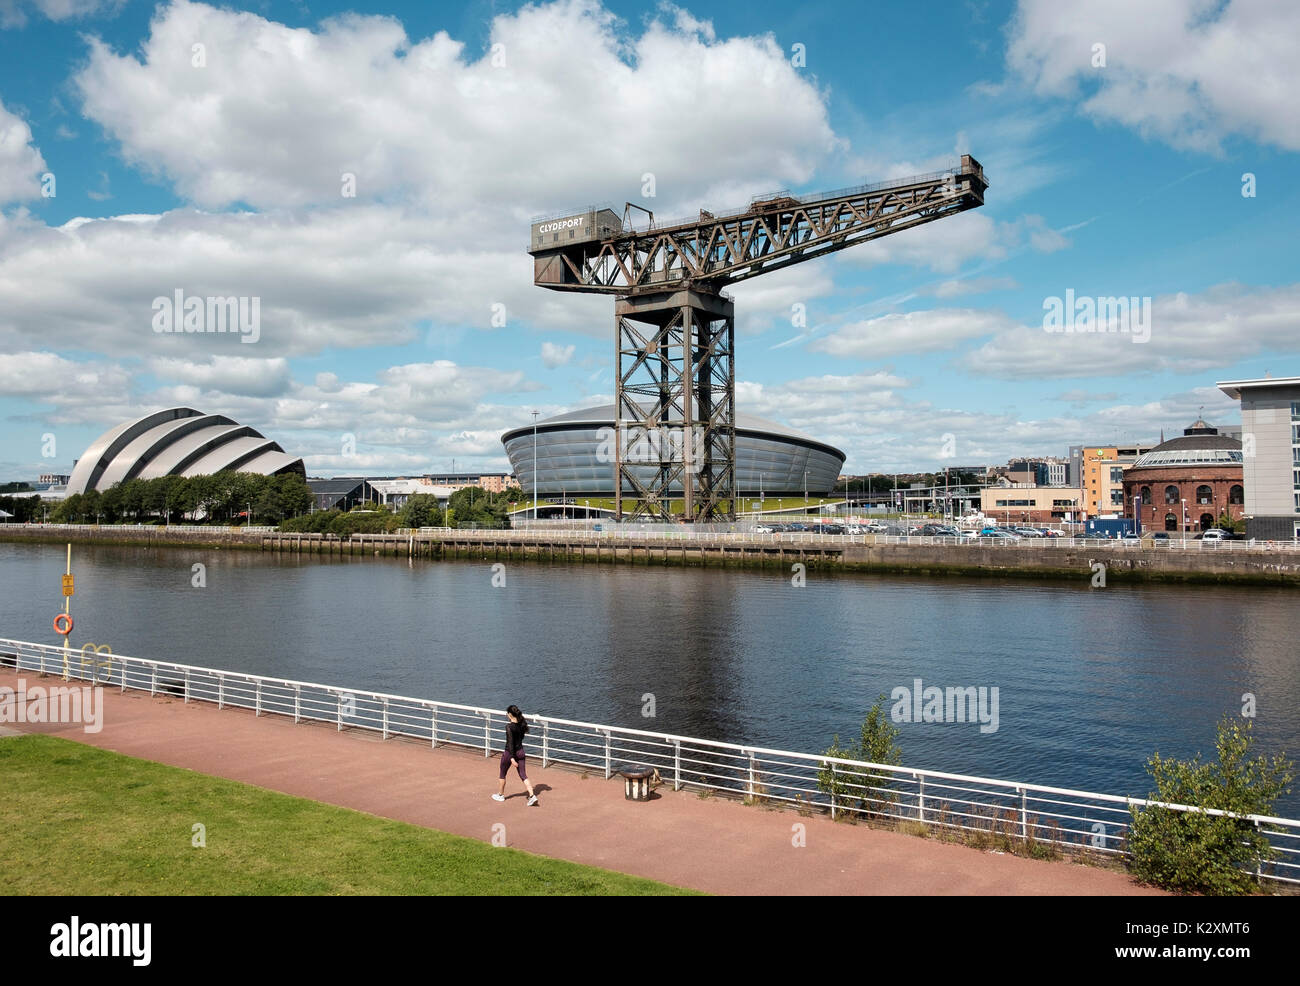 Modern architectural development including the SSE Hydro multi-purpose indoor arena and the SEC Armadillo concert venue - Stock Image